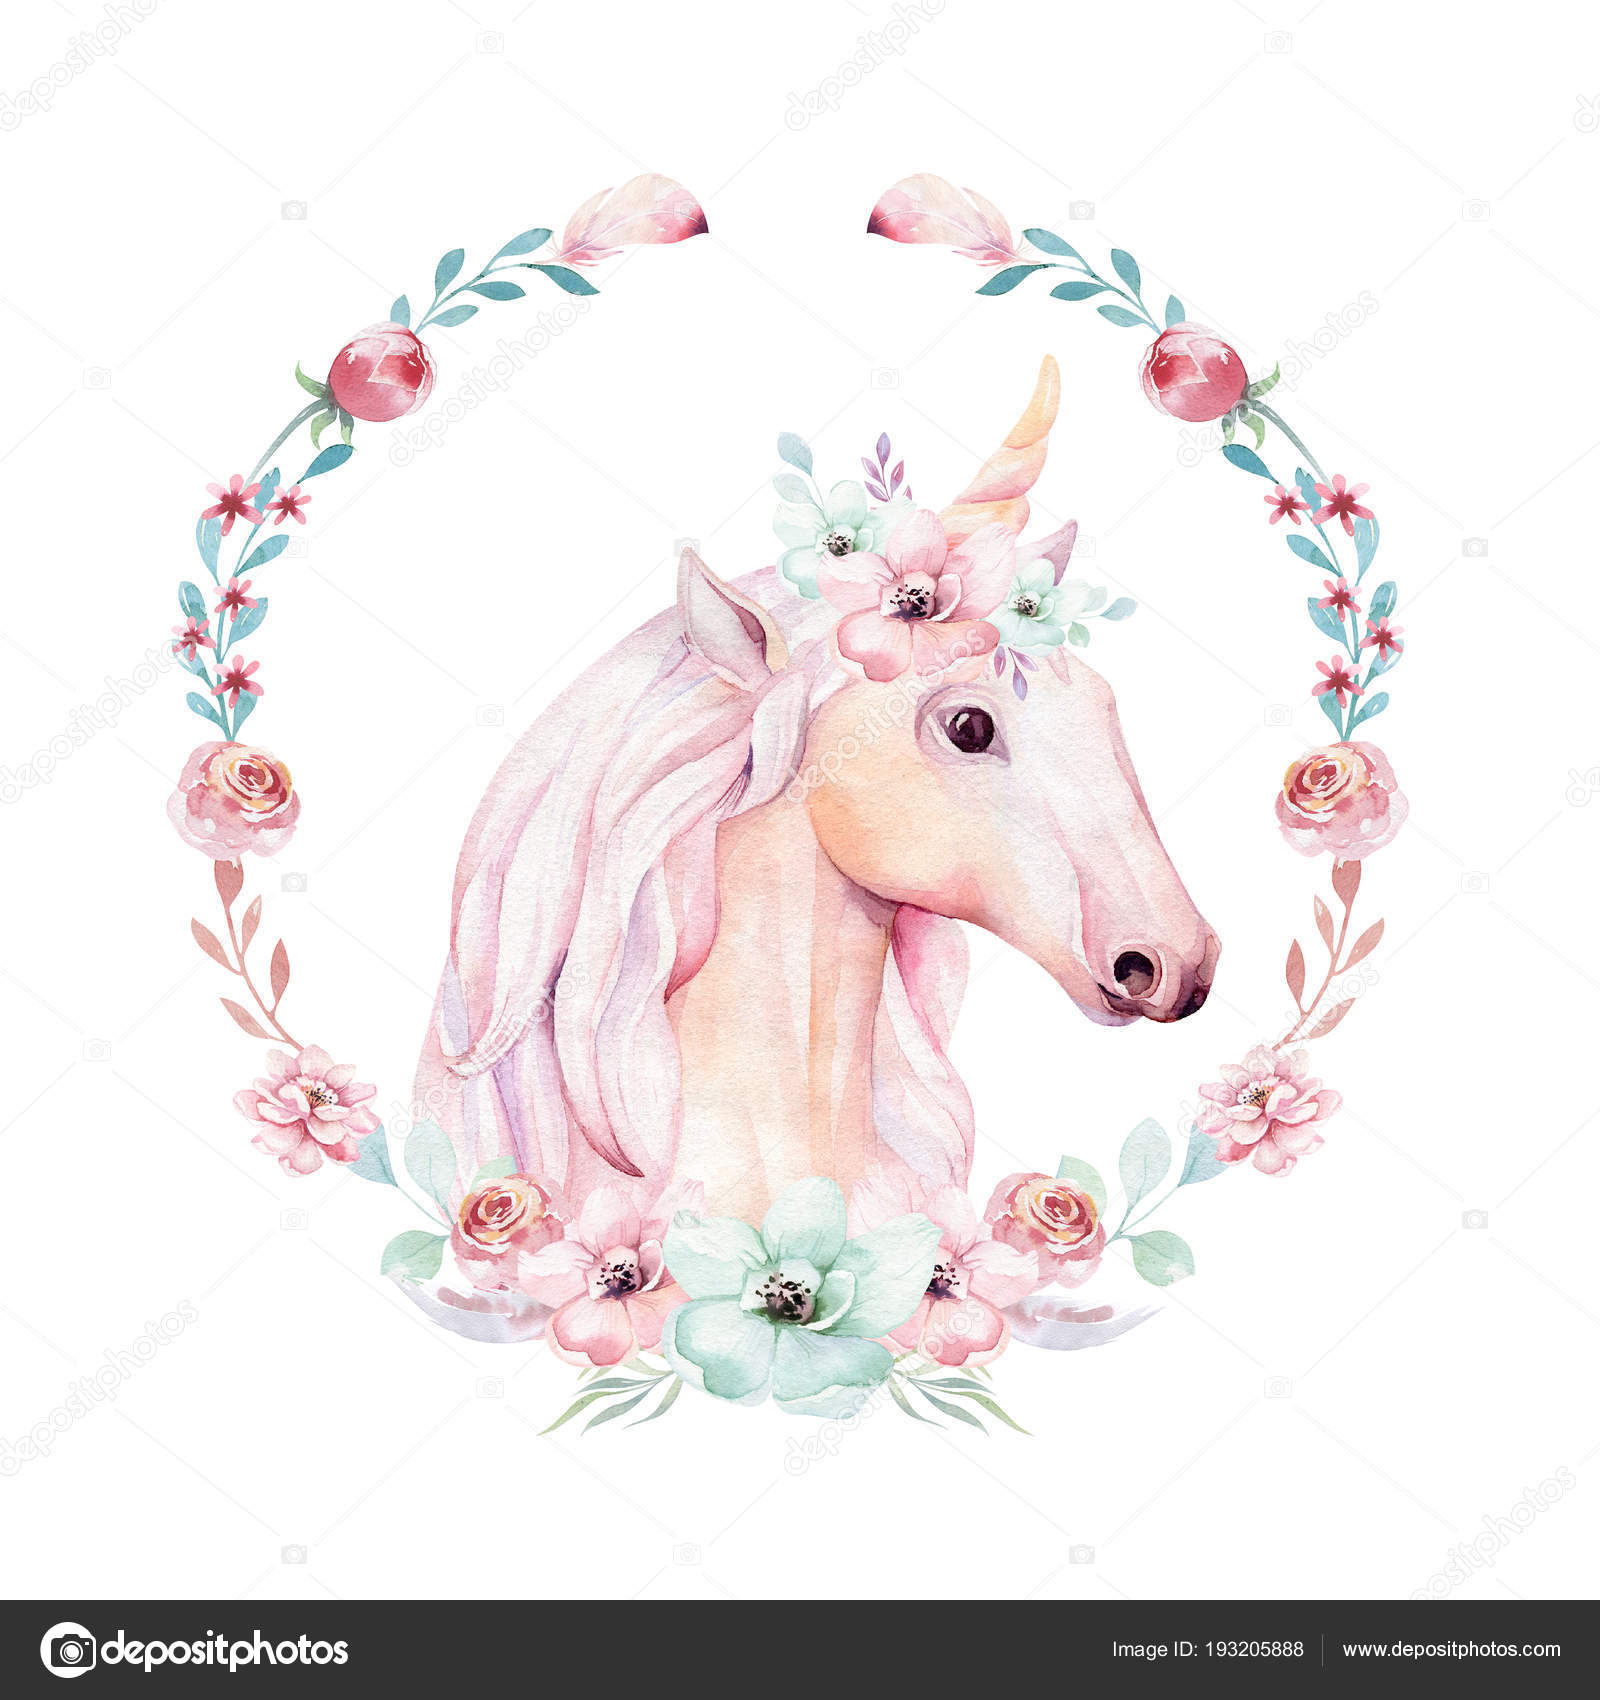 Isolated Cute Watercolor Unicorn Clipart Flower Wreath